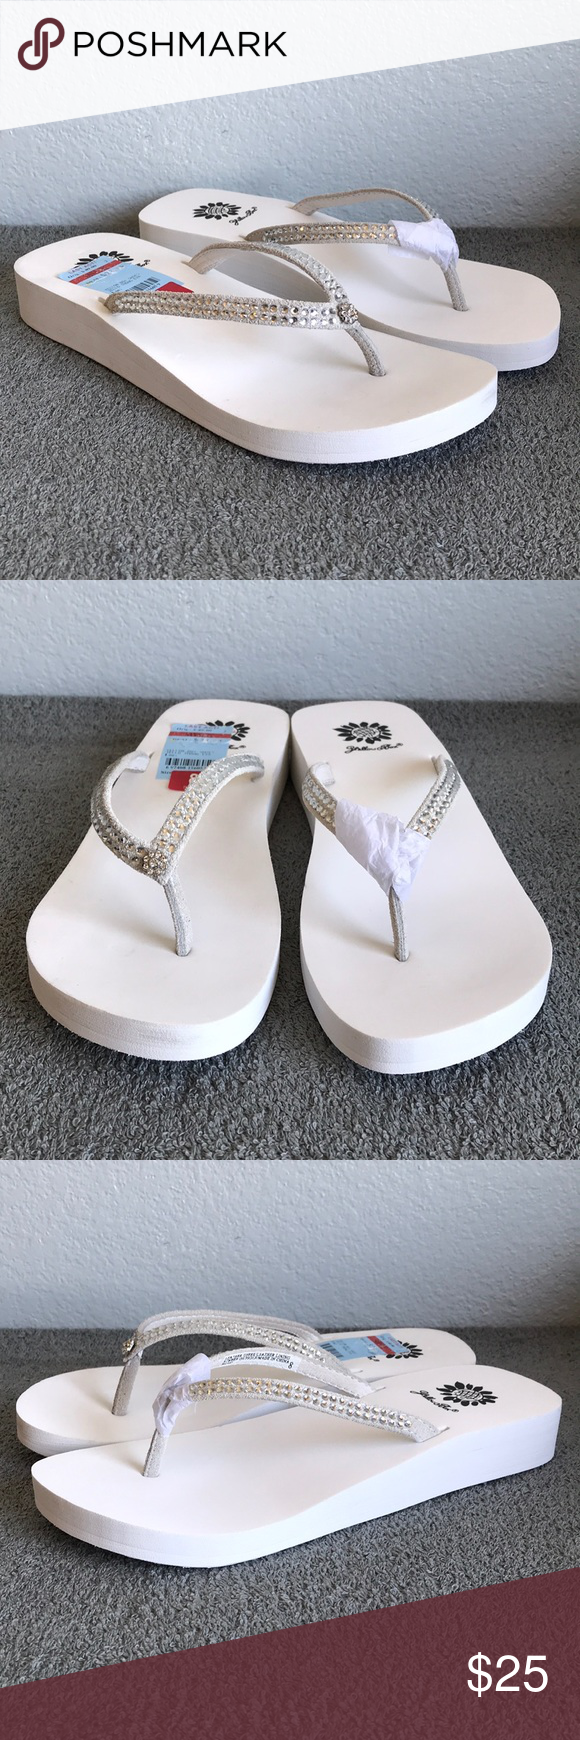 9b3d075b5bbf48 Yellow Box Jello White Wedge Sandals New in box. Yellow Box Women s wedge  sandal flip flops in size 8. Jeweled And Rhinestone. Very pretty.